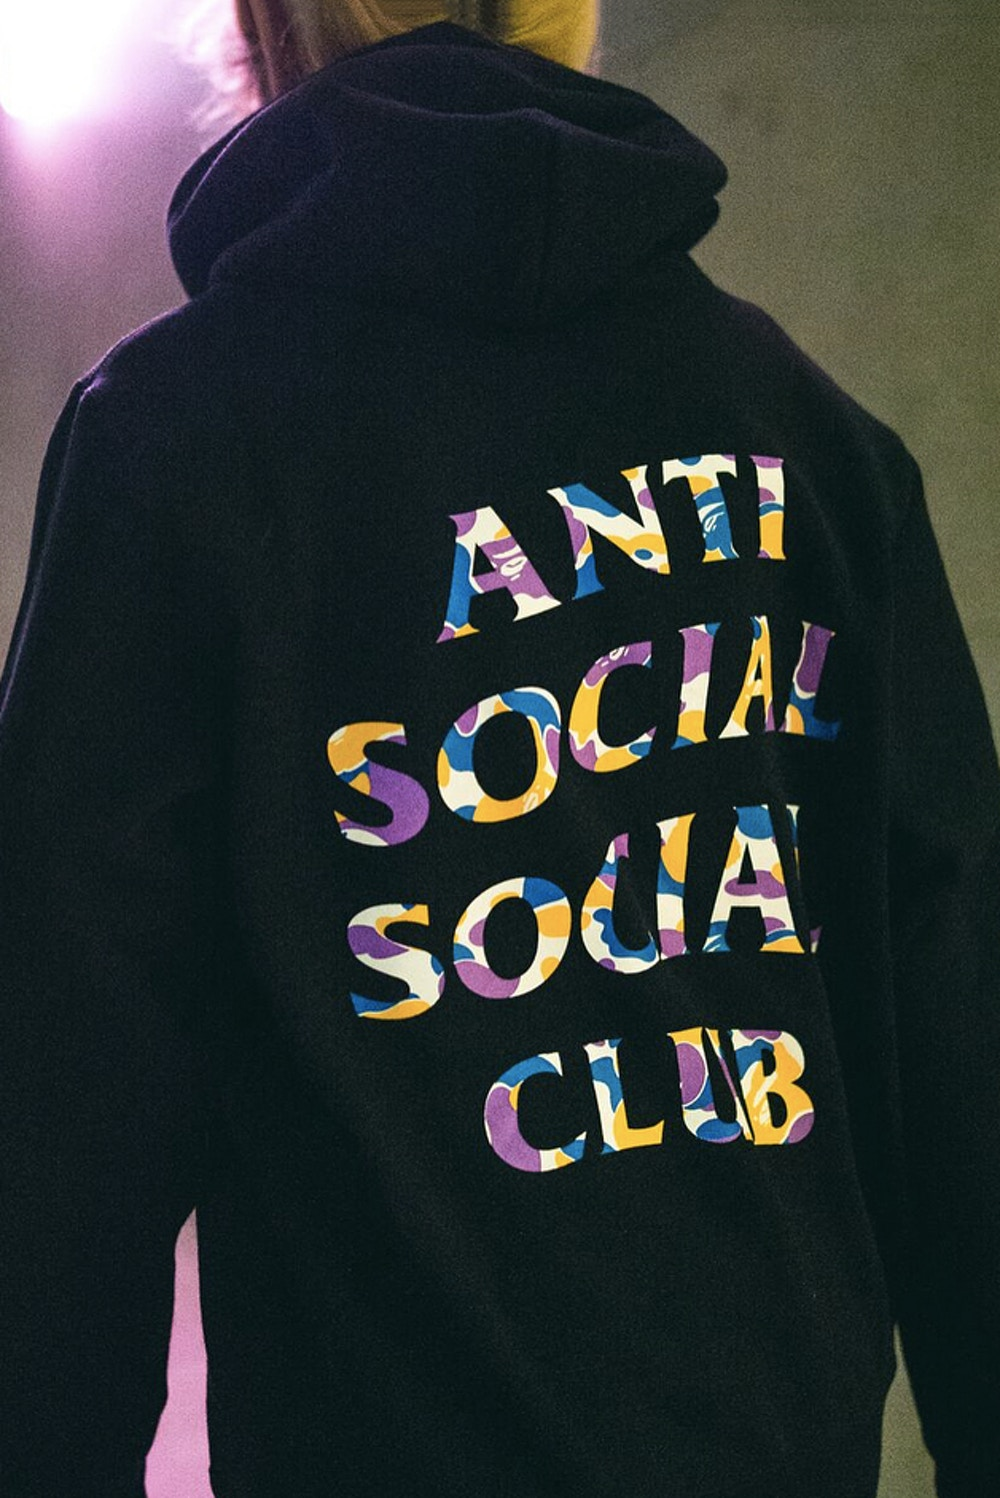 Anti Social Club x BAPE Collaboration Revealed